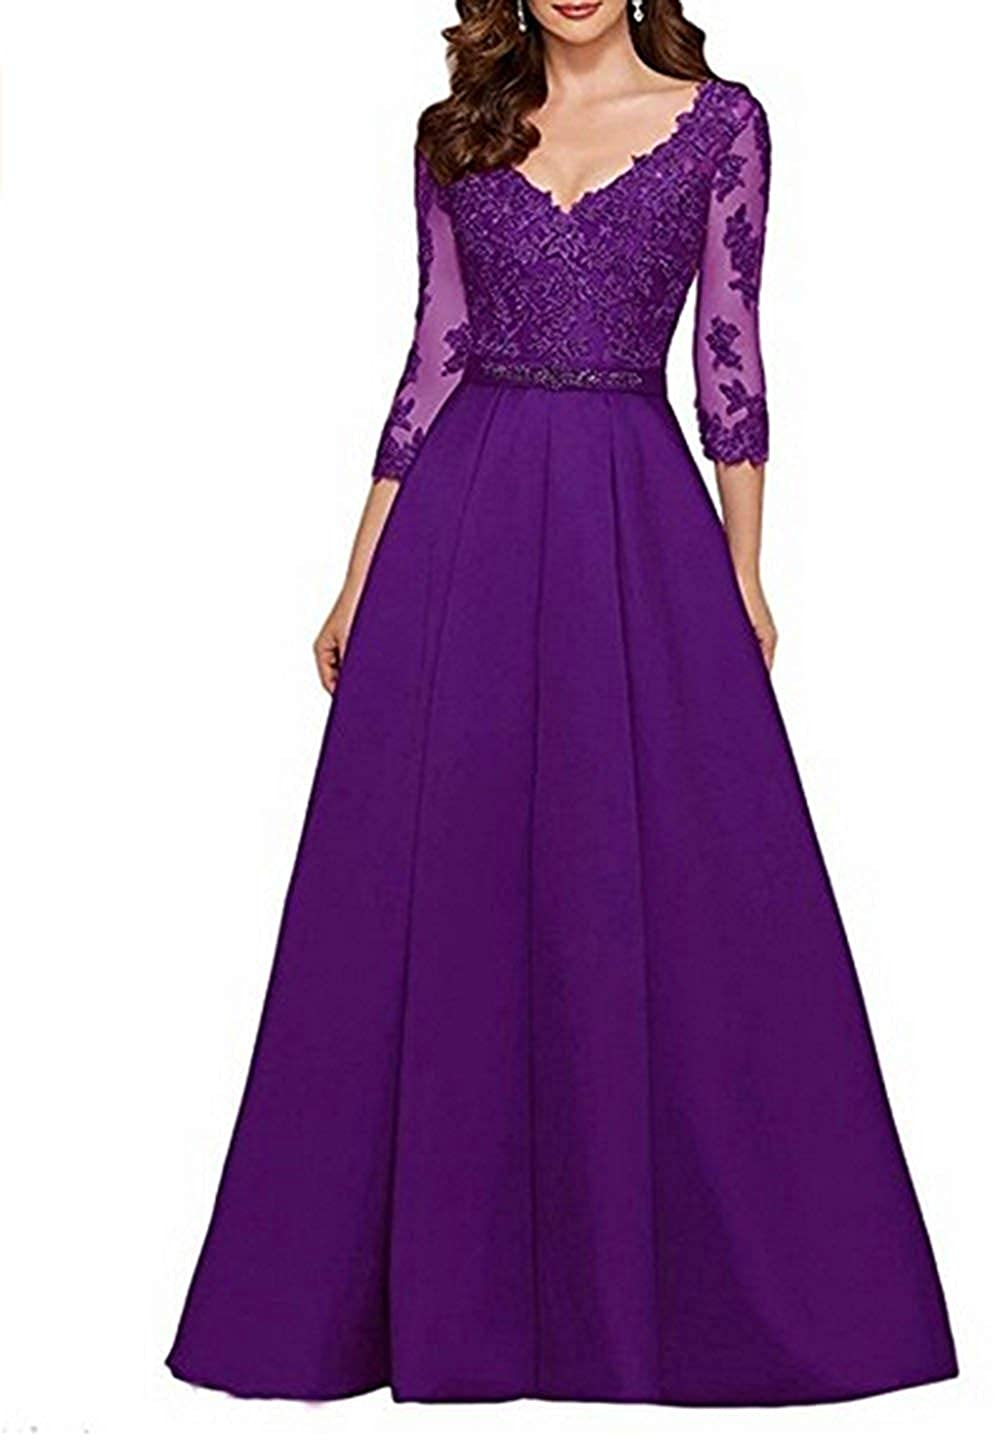 Purple Mother of The Bride Dresses Lace V Neck Long Sleeve Evening Prom Gowns Plus Size Mother Dress